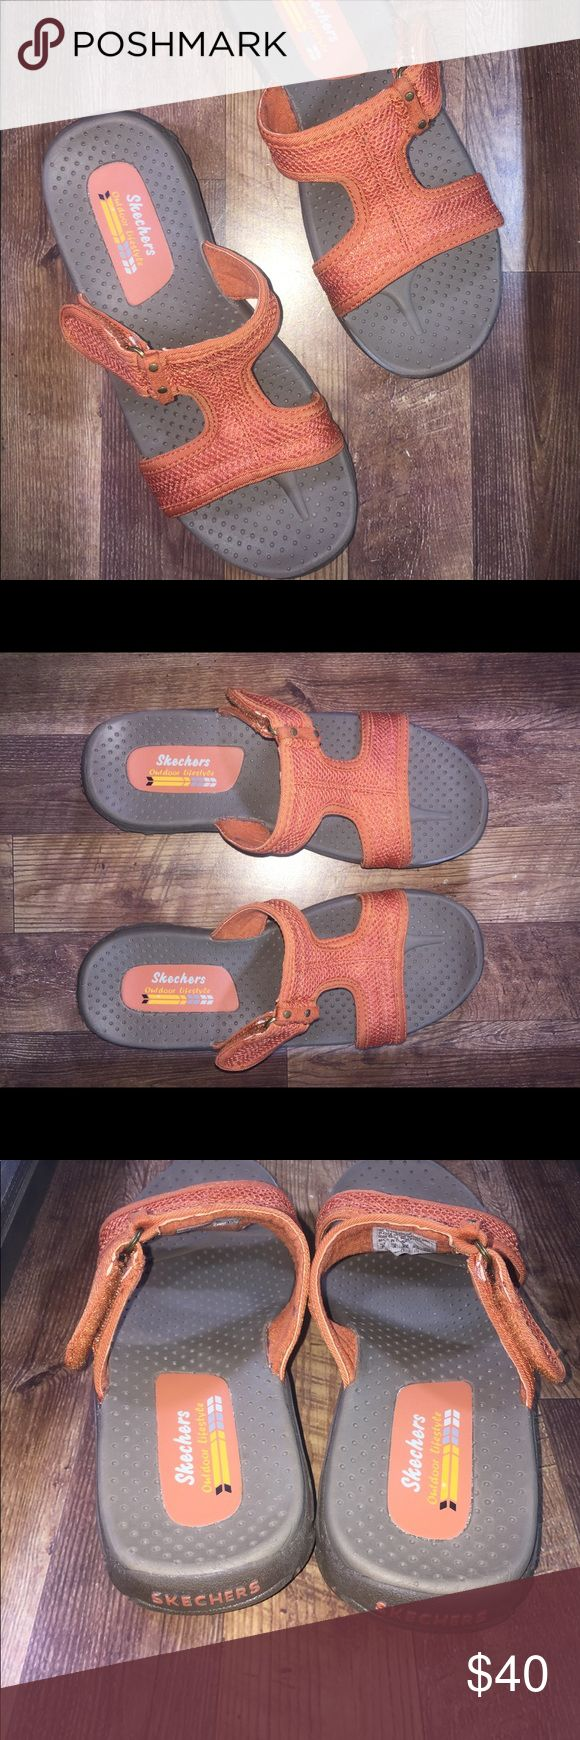 Ladies Skechers Outdoor Lifestyle Sandals Orange Ladies Skechers Outdoor Lifestyle Sandals Orange Size 6M * Free Shipping* new without box & tags only Tried on Skechers Shoes Sandals